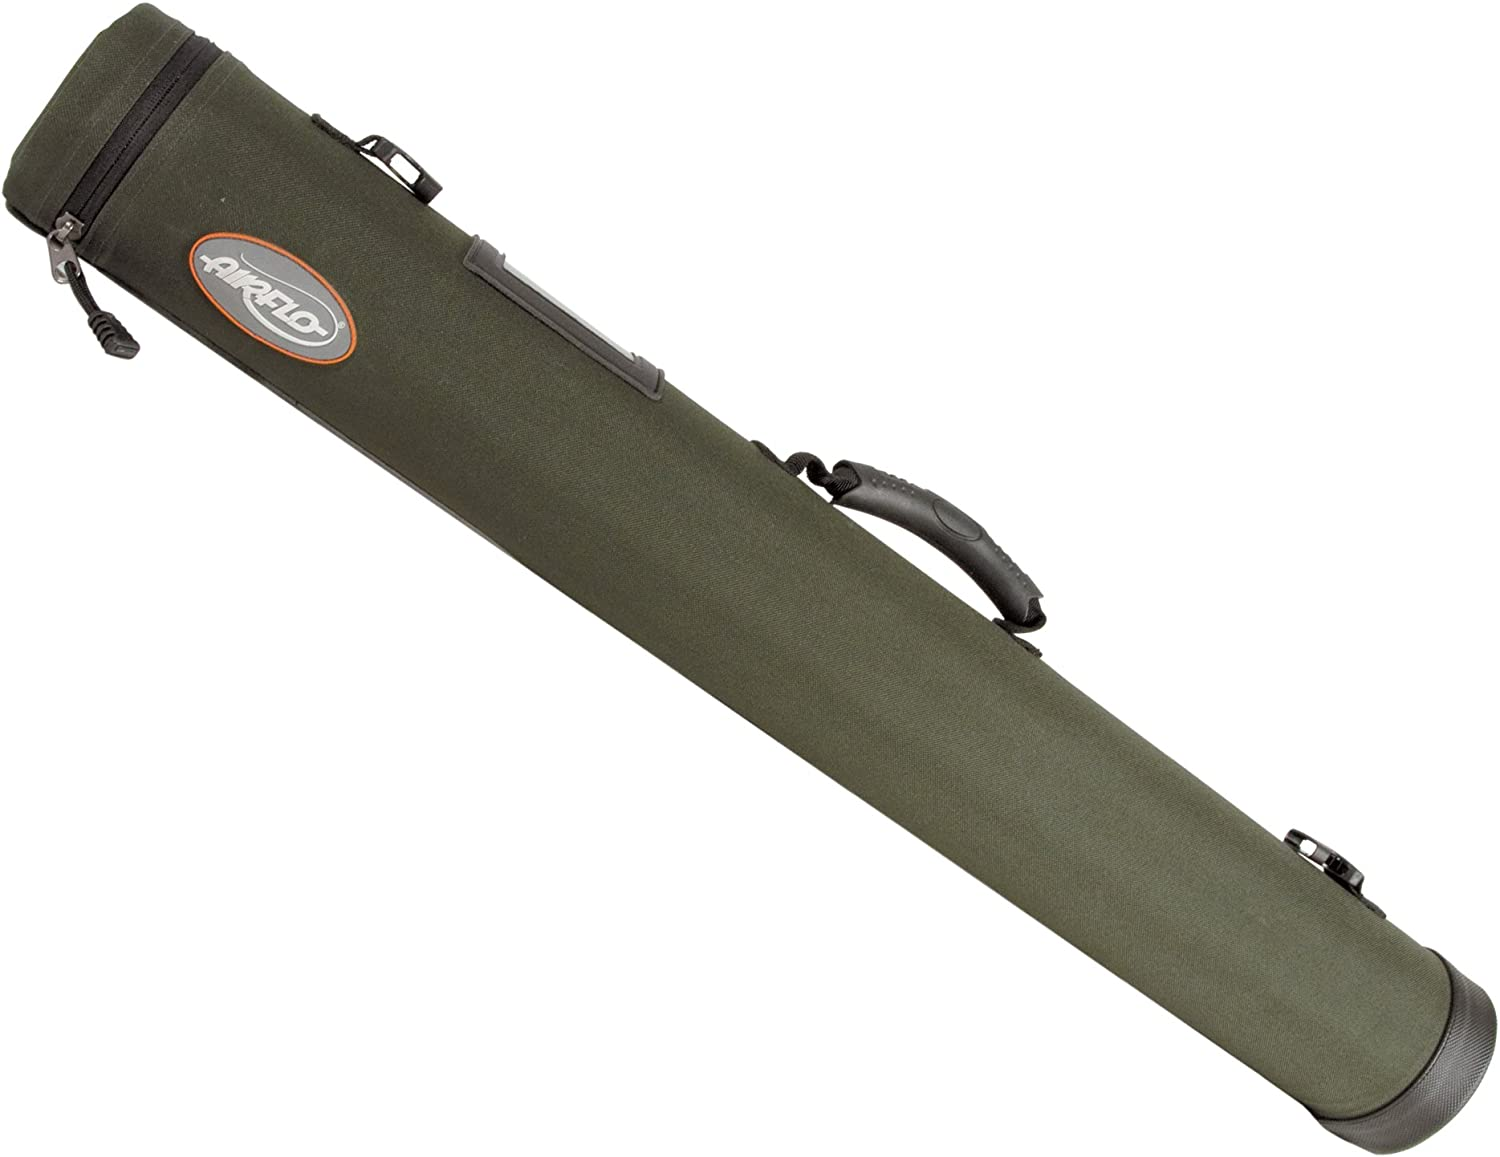 Airflo MULTI FLY ROD TUBE STORAGE TRAVEL FLY ROD CASE